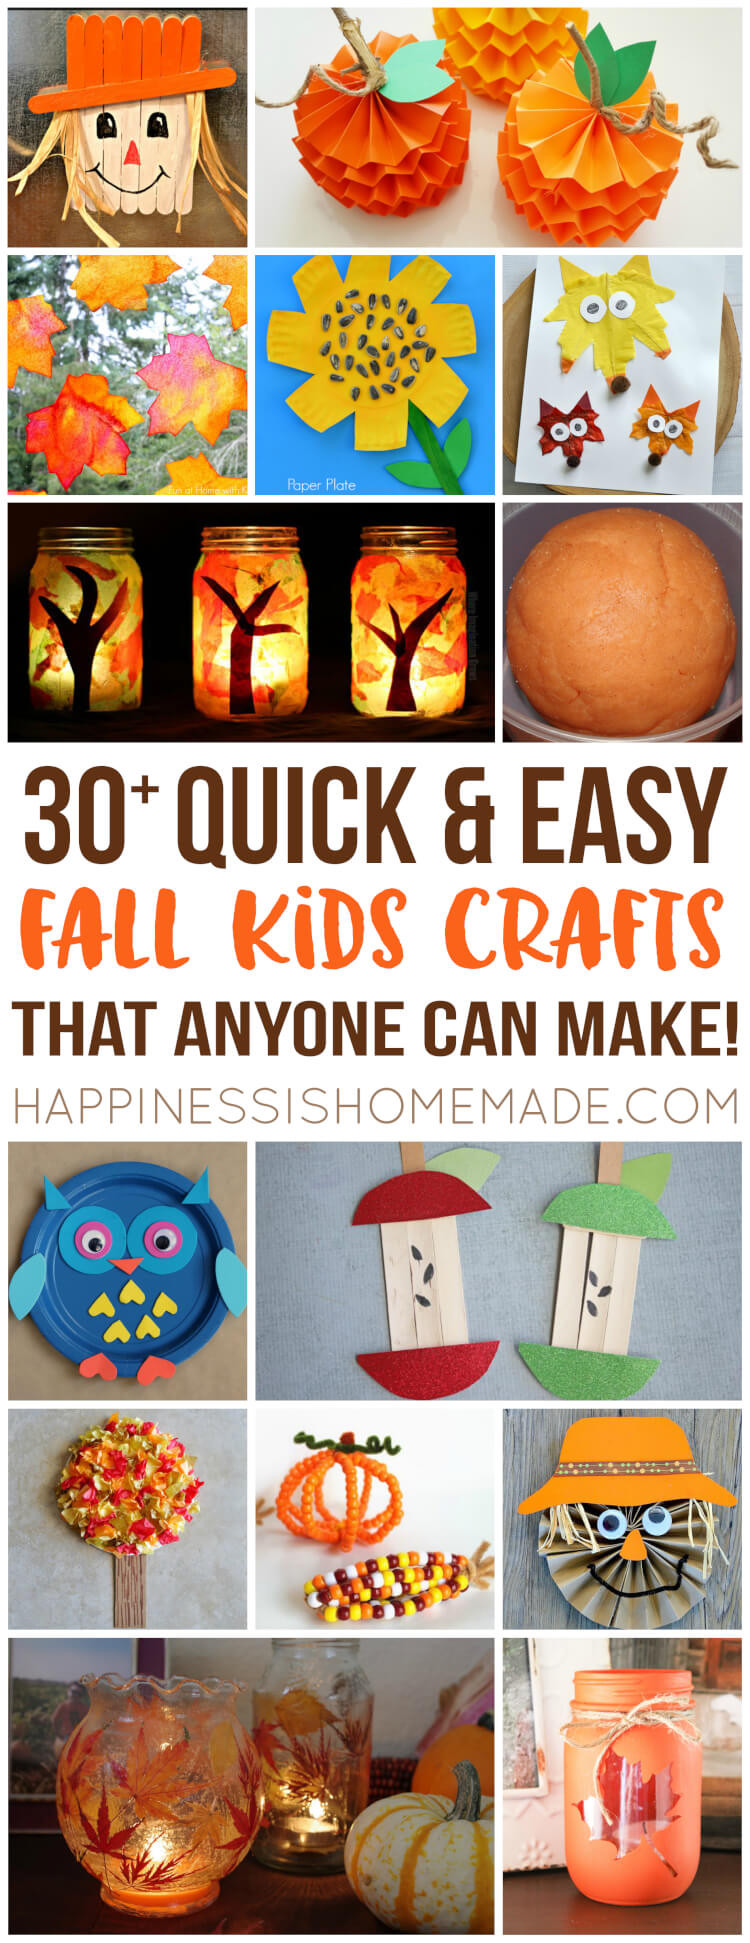 Fall Toddler Craft Ideas  Easy Fall Kids Crafts That Anyone Can Make Happiness is